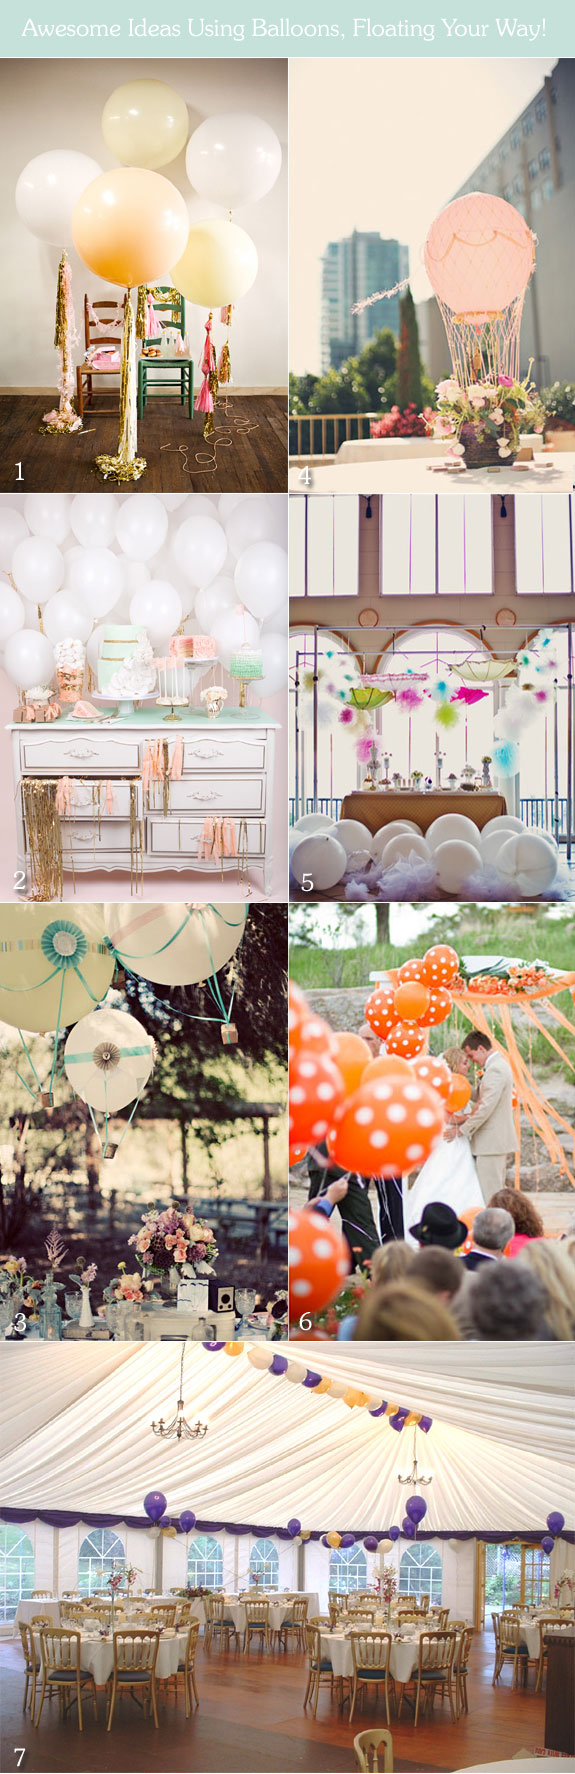 Ideas on using balloons as wedding decorations